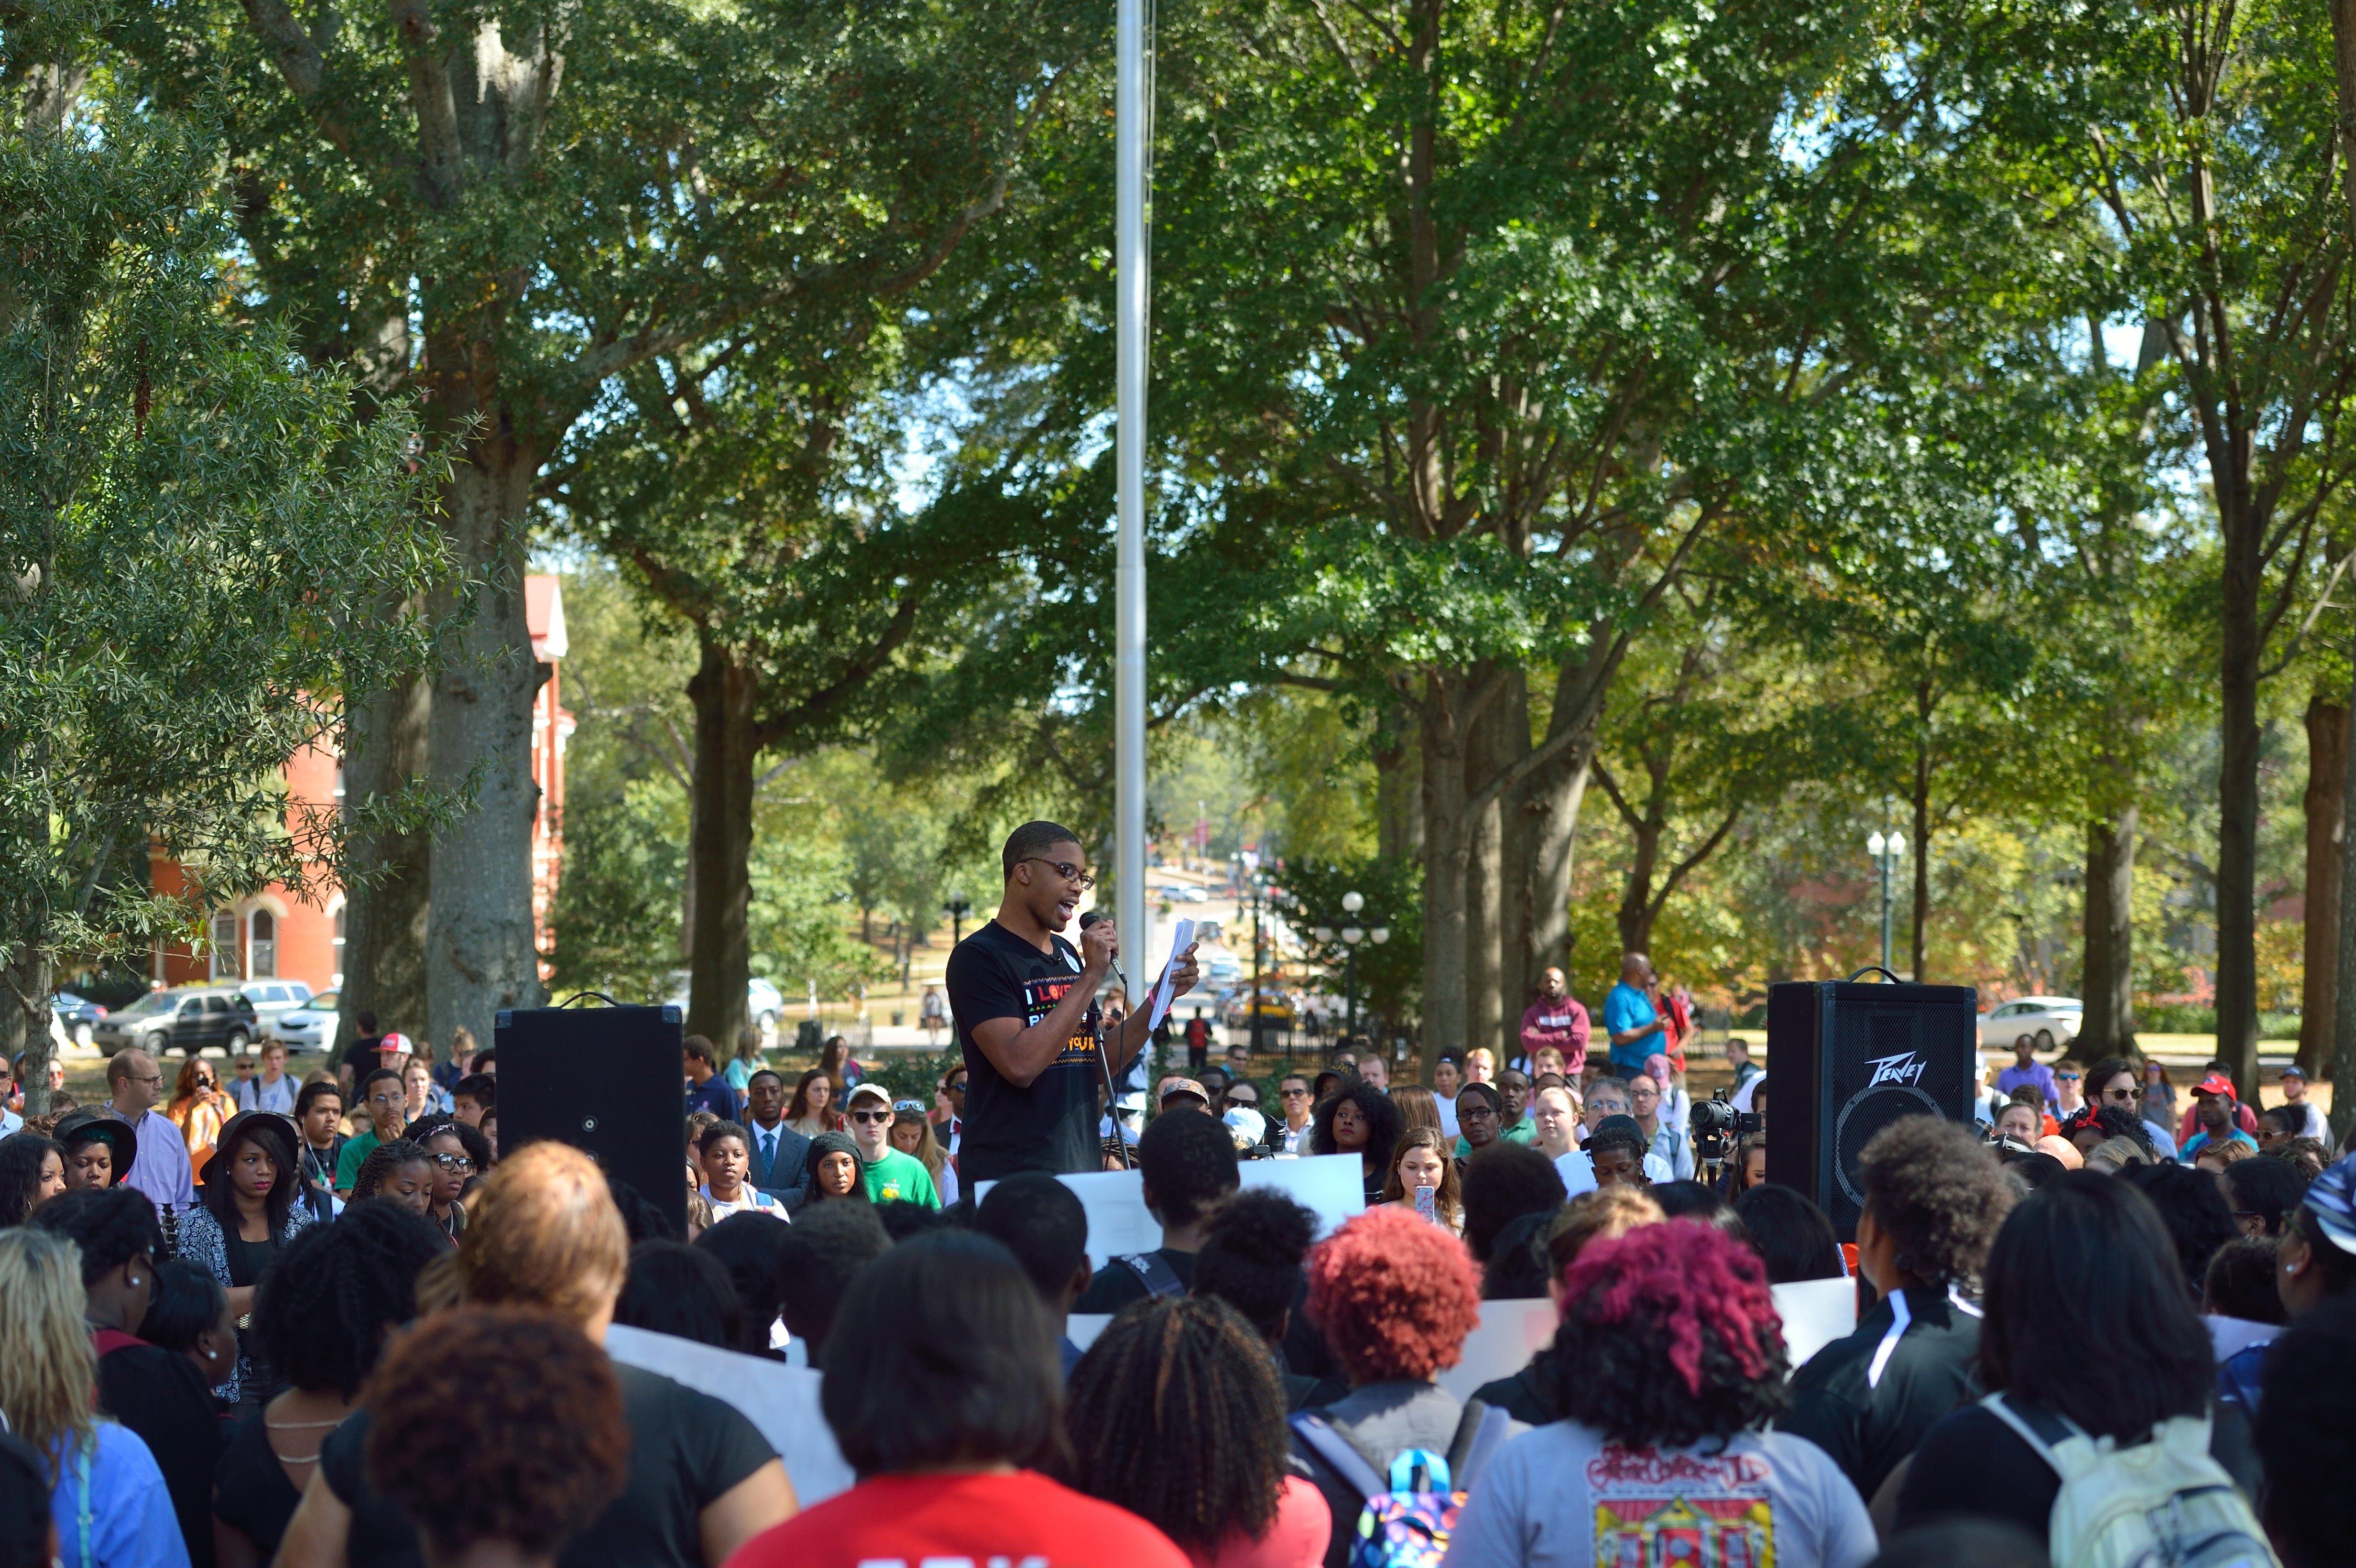 Buka Okoye, president of the campus NAACP, reads from a prepared statement at the rally in the circle asking that the ASB request the administration cease displaying the Mississippi state flag because of the confederate symbol it contains. Photo by Kevin Bain/Ole Miss Communications